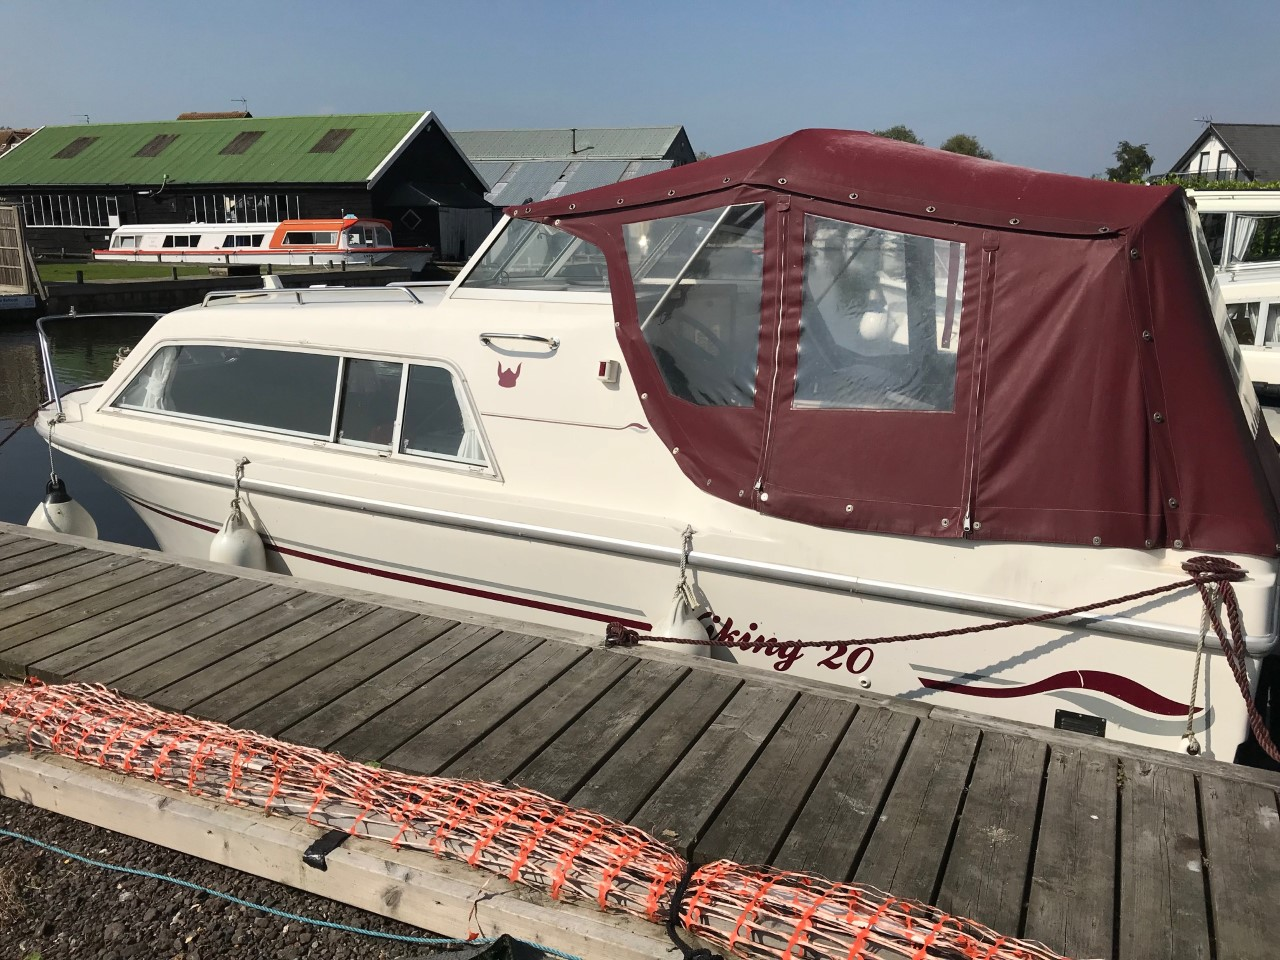 Viking 20 for sale from Norfolk Boat Sales